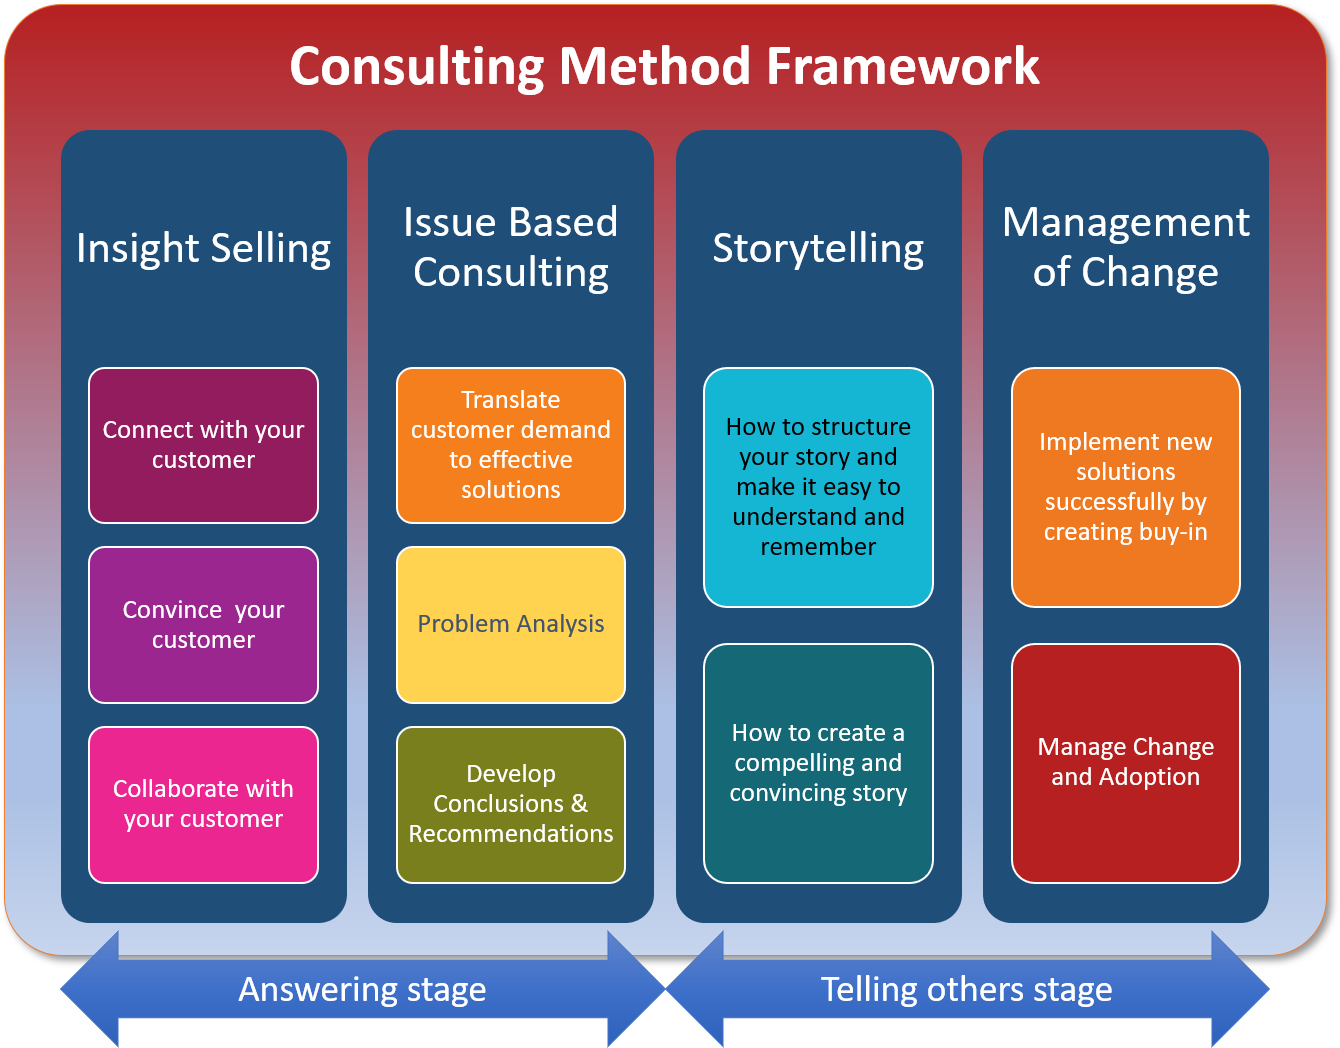 Consulting Method Framework